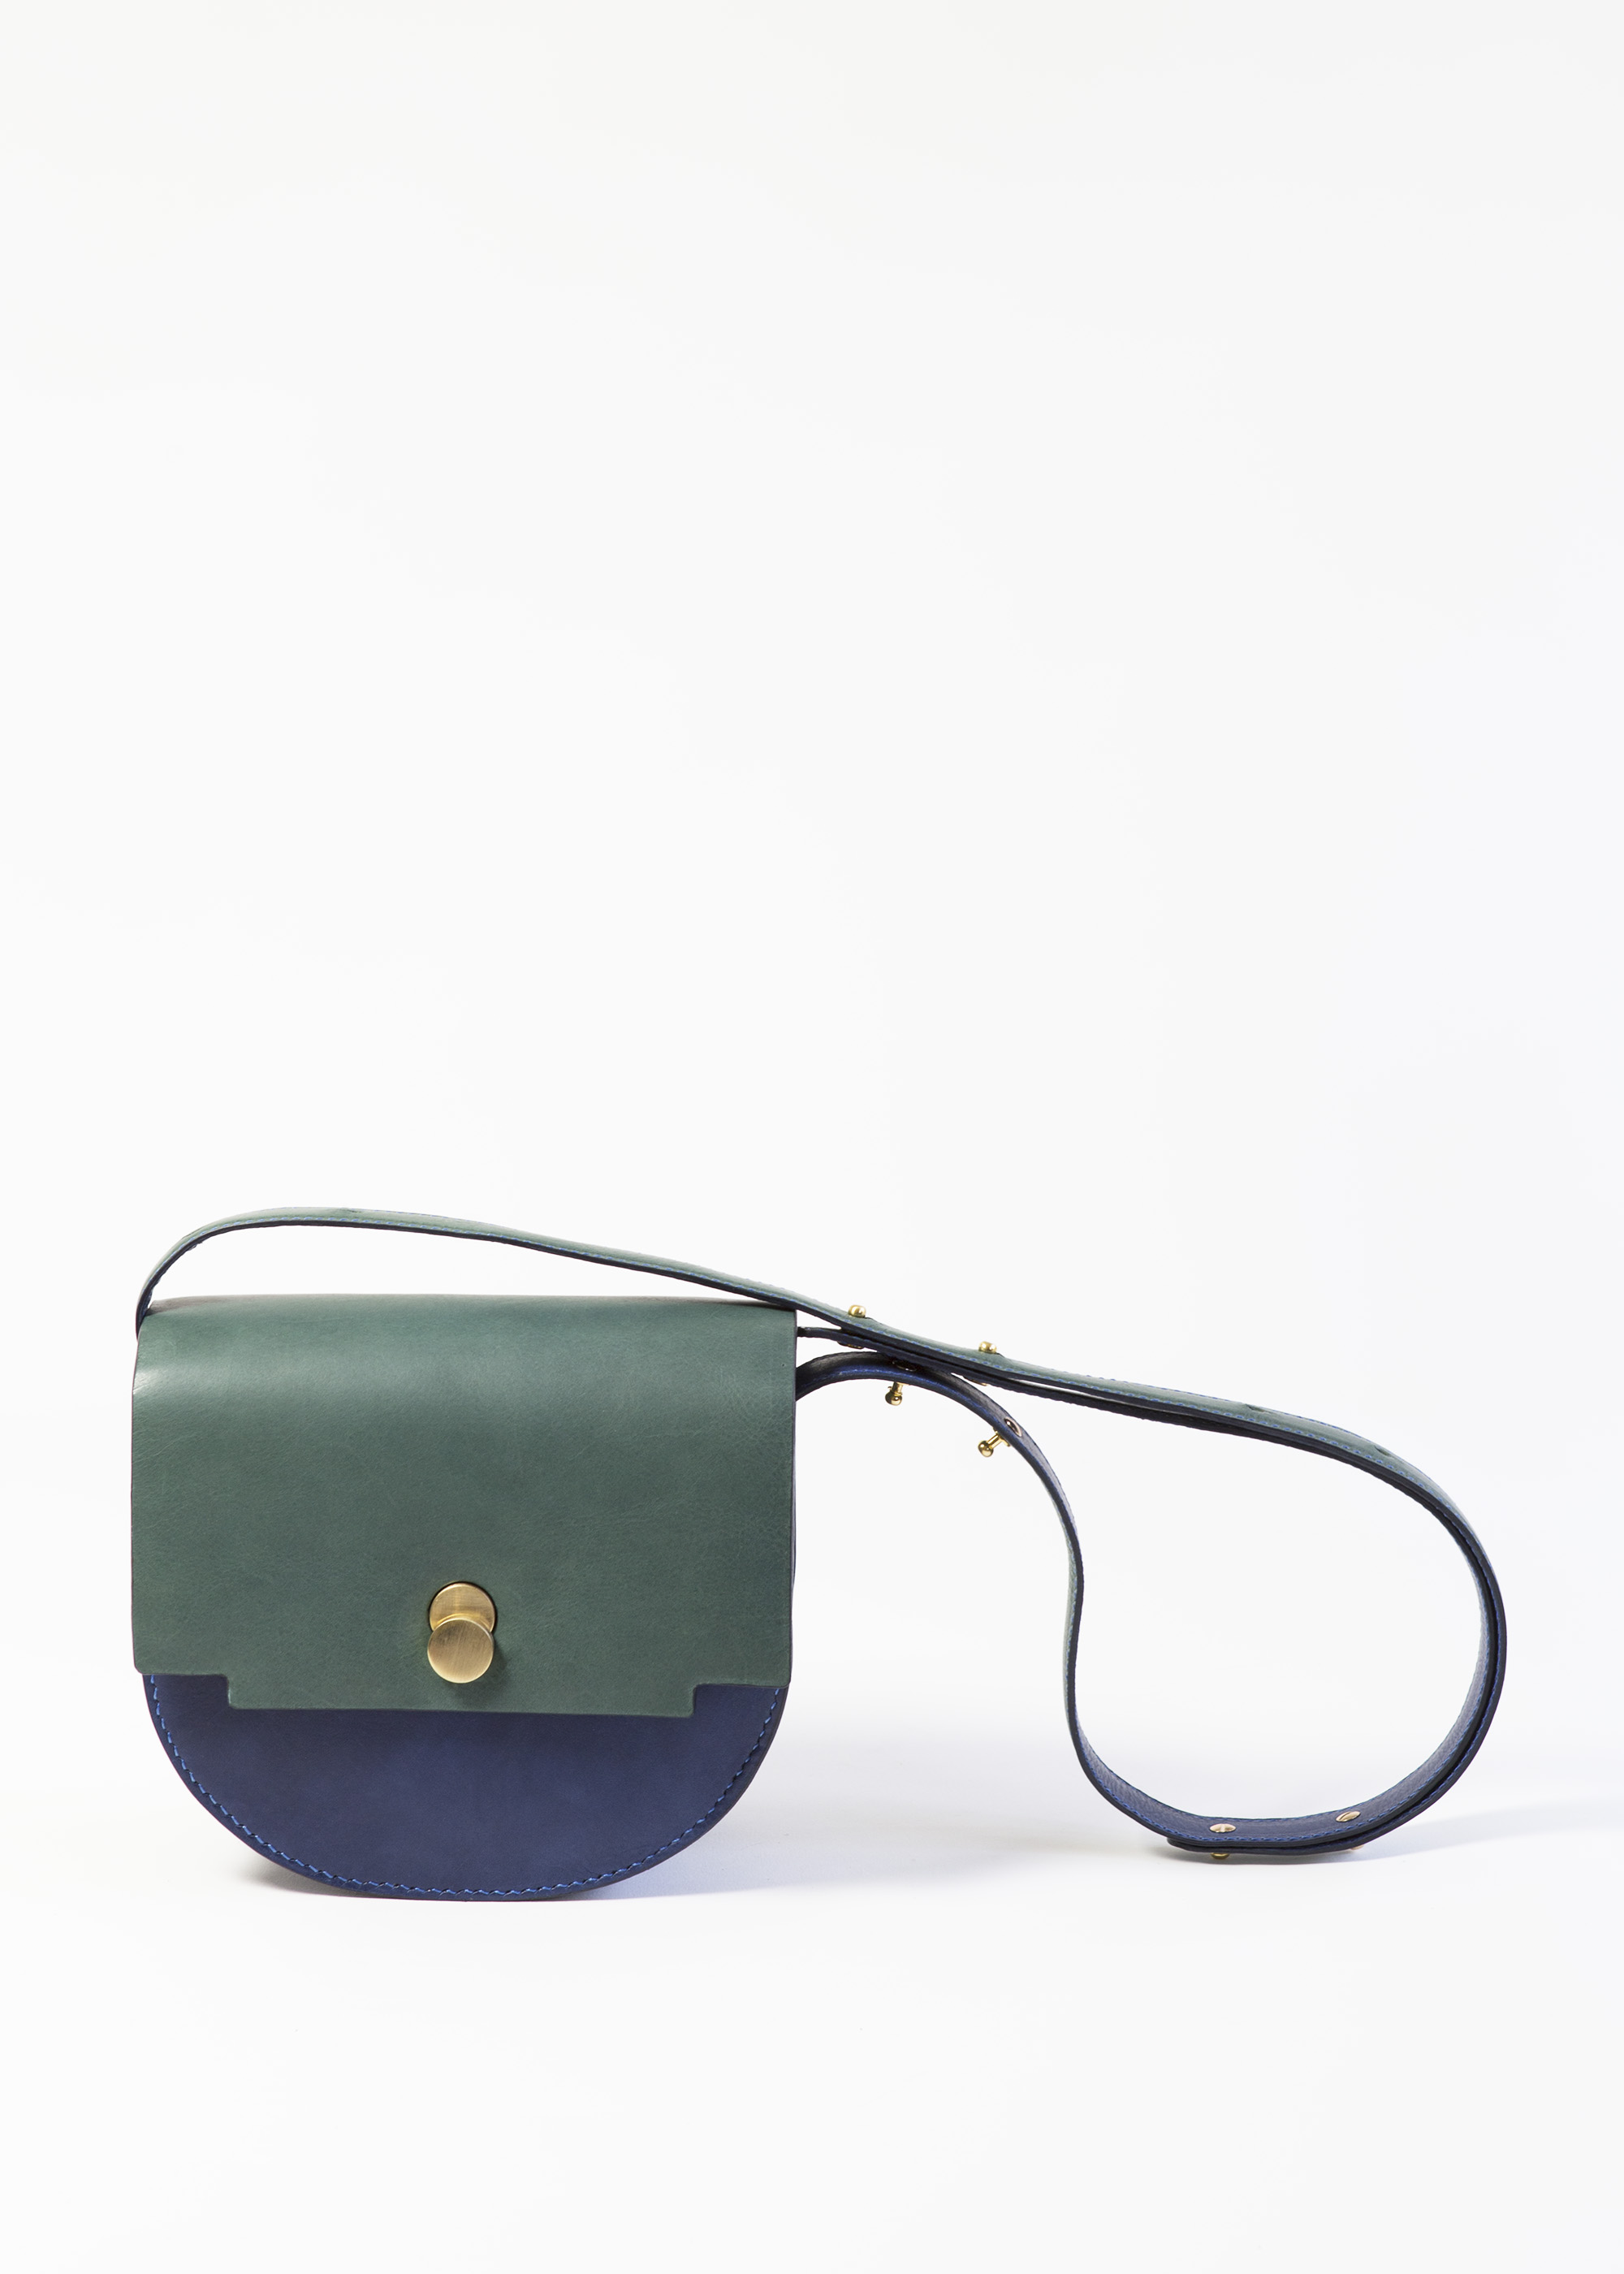 Mita Saddle bag Marine Agave by LAHARA on curated-crowd.com